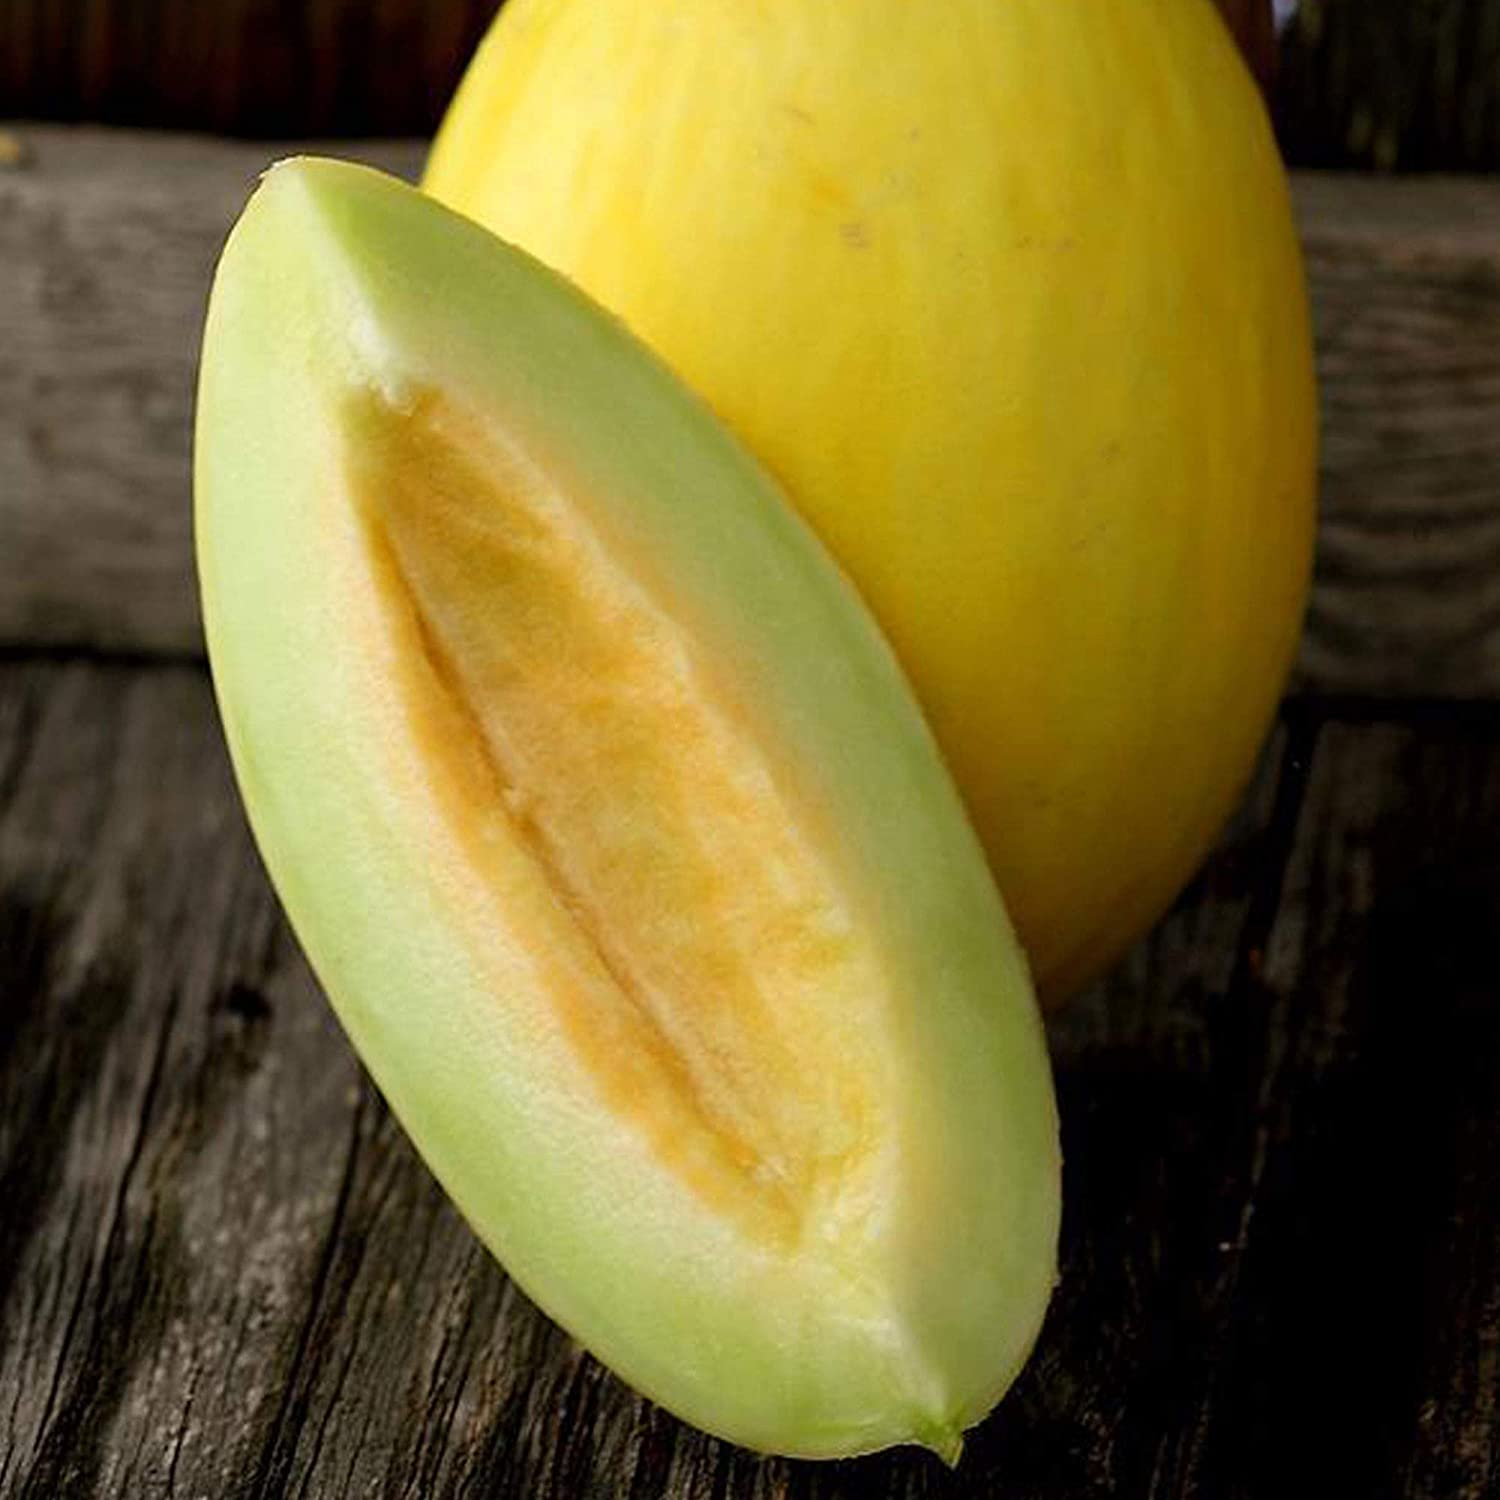 Juane Canary Melon Seeds - 1 g ~35 Seeds - Heirloom, Open Pollinated, Non-GMO, Farm & Vegetable/Fruit Gardening Seeds